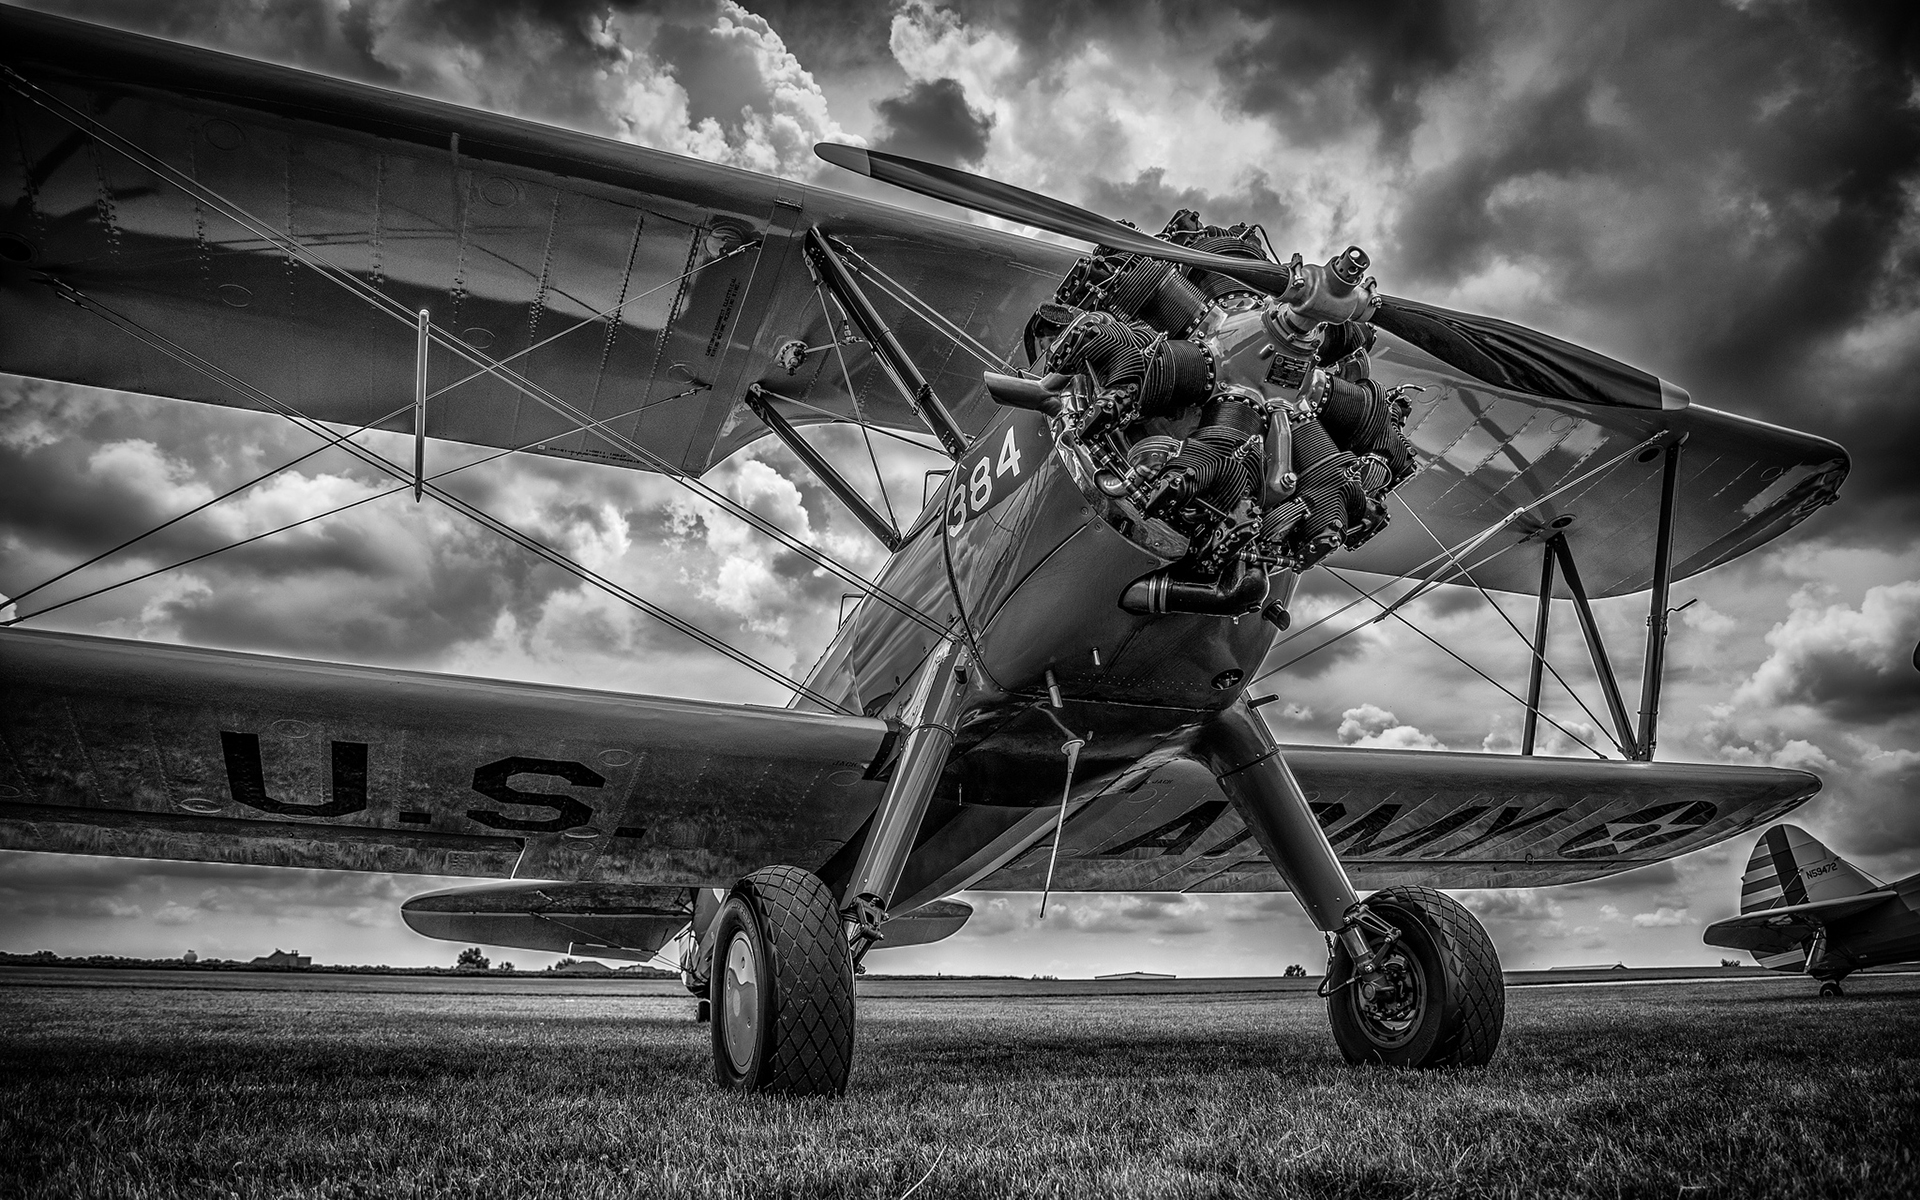 Imghdnet Provide Top Vintage Airplane Wallpapers in Various size 1920x1200